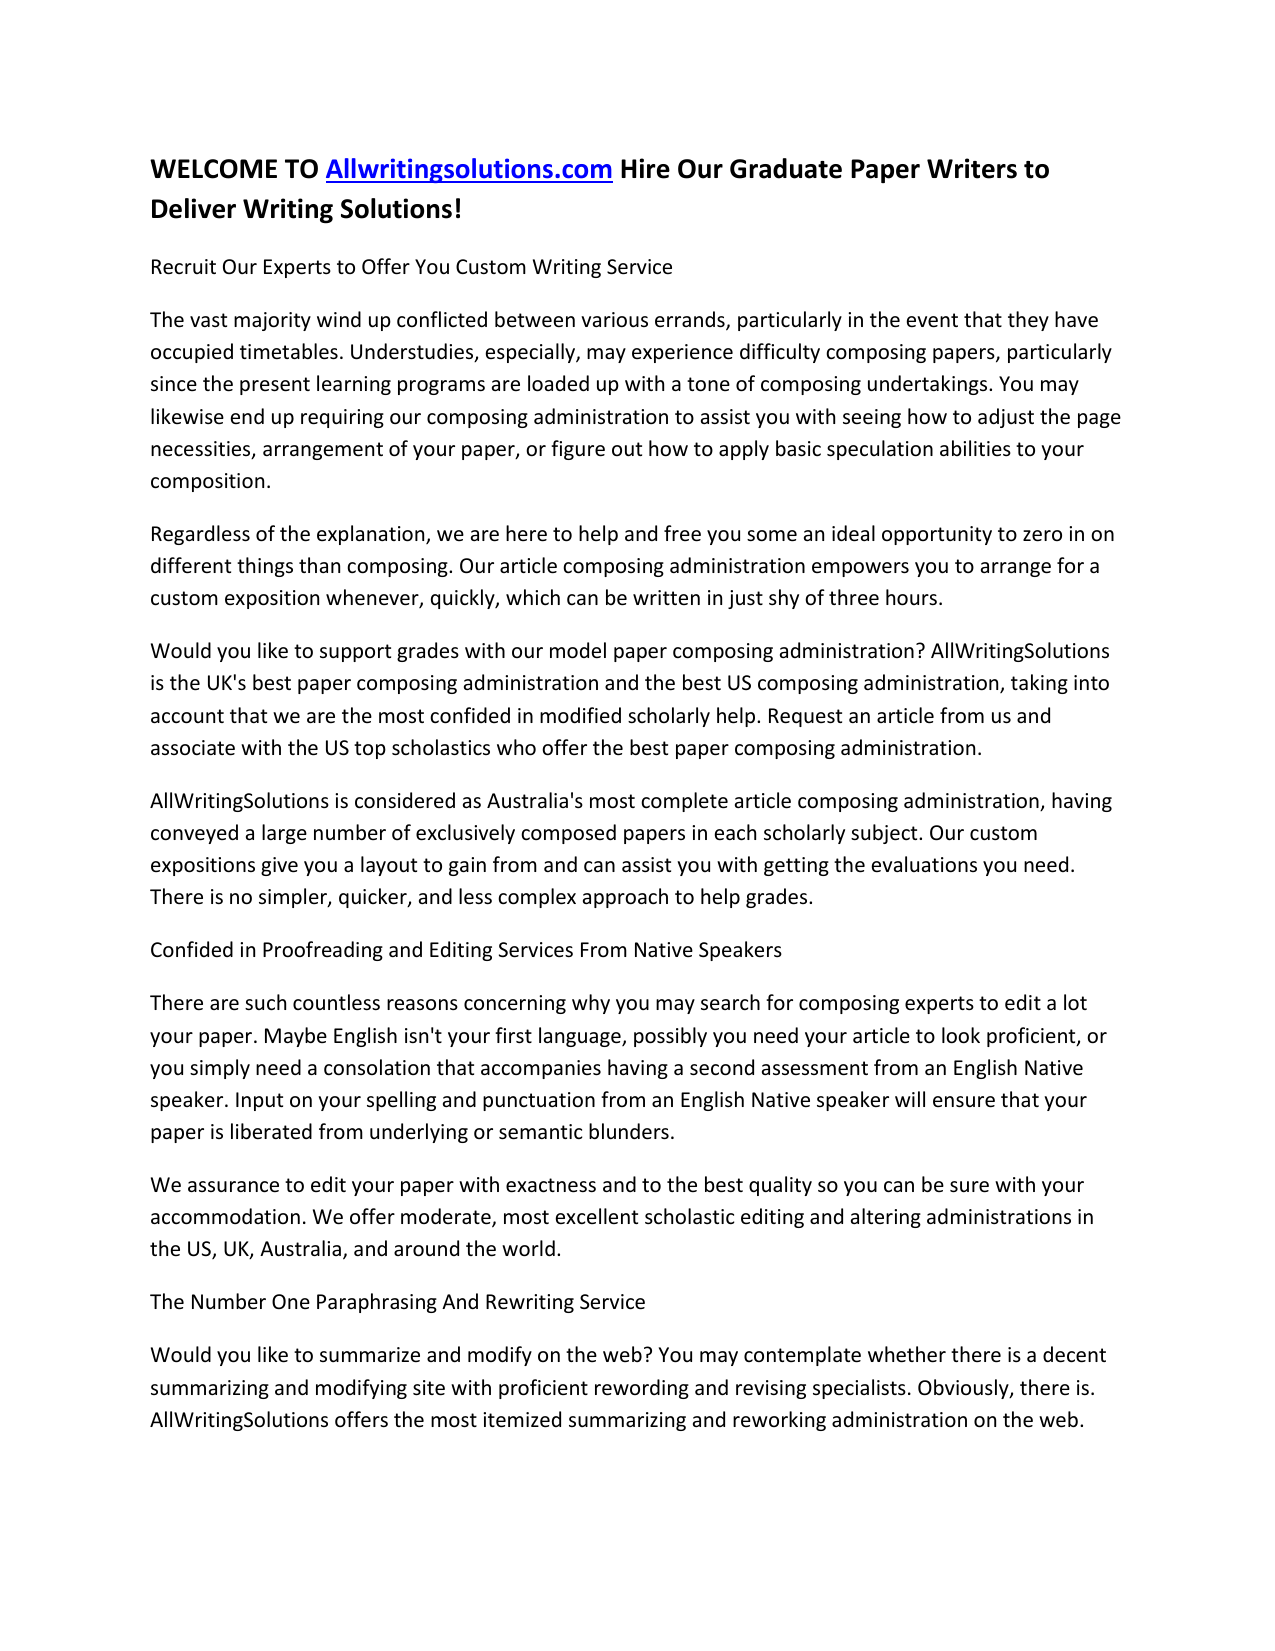 Custom paper proofreading site for college how to write an entry essay for college